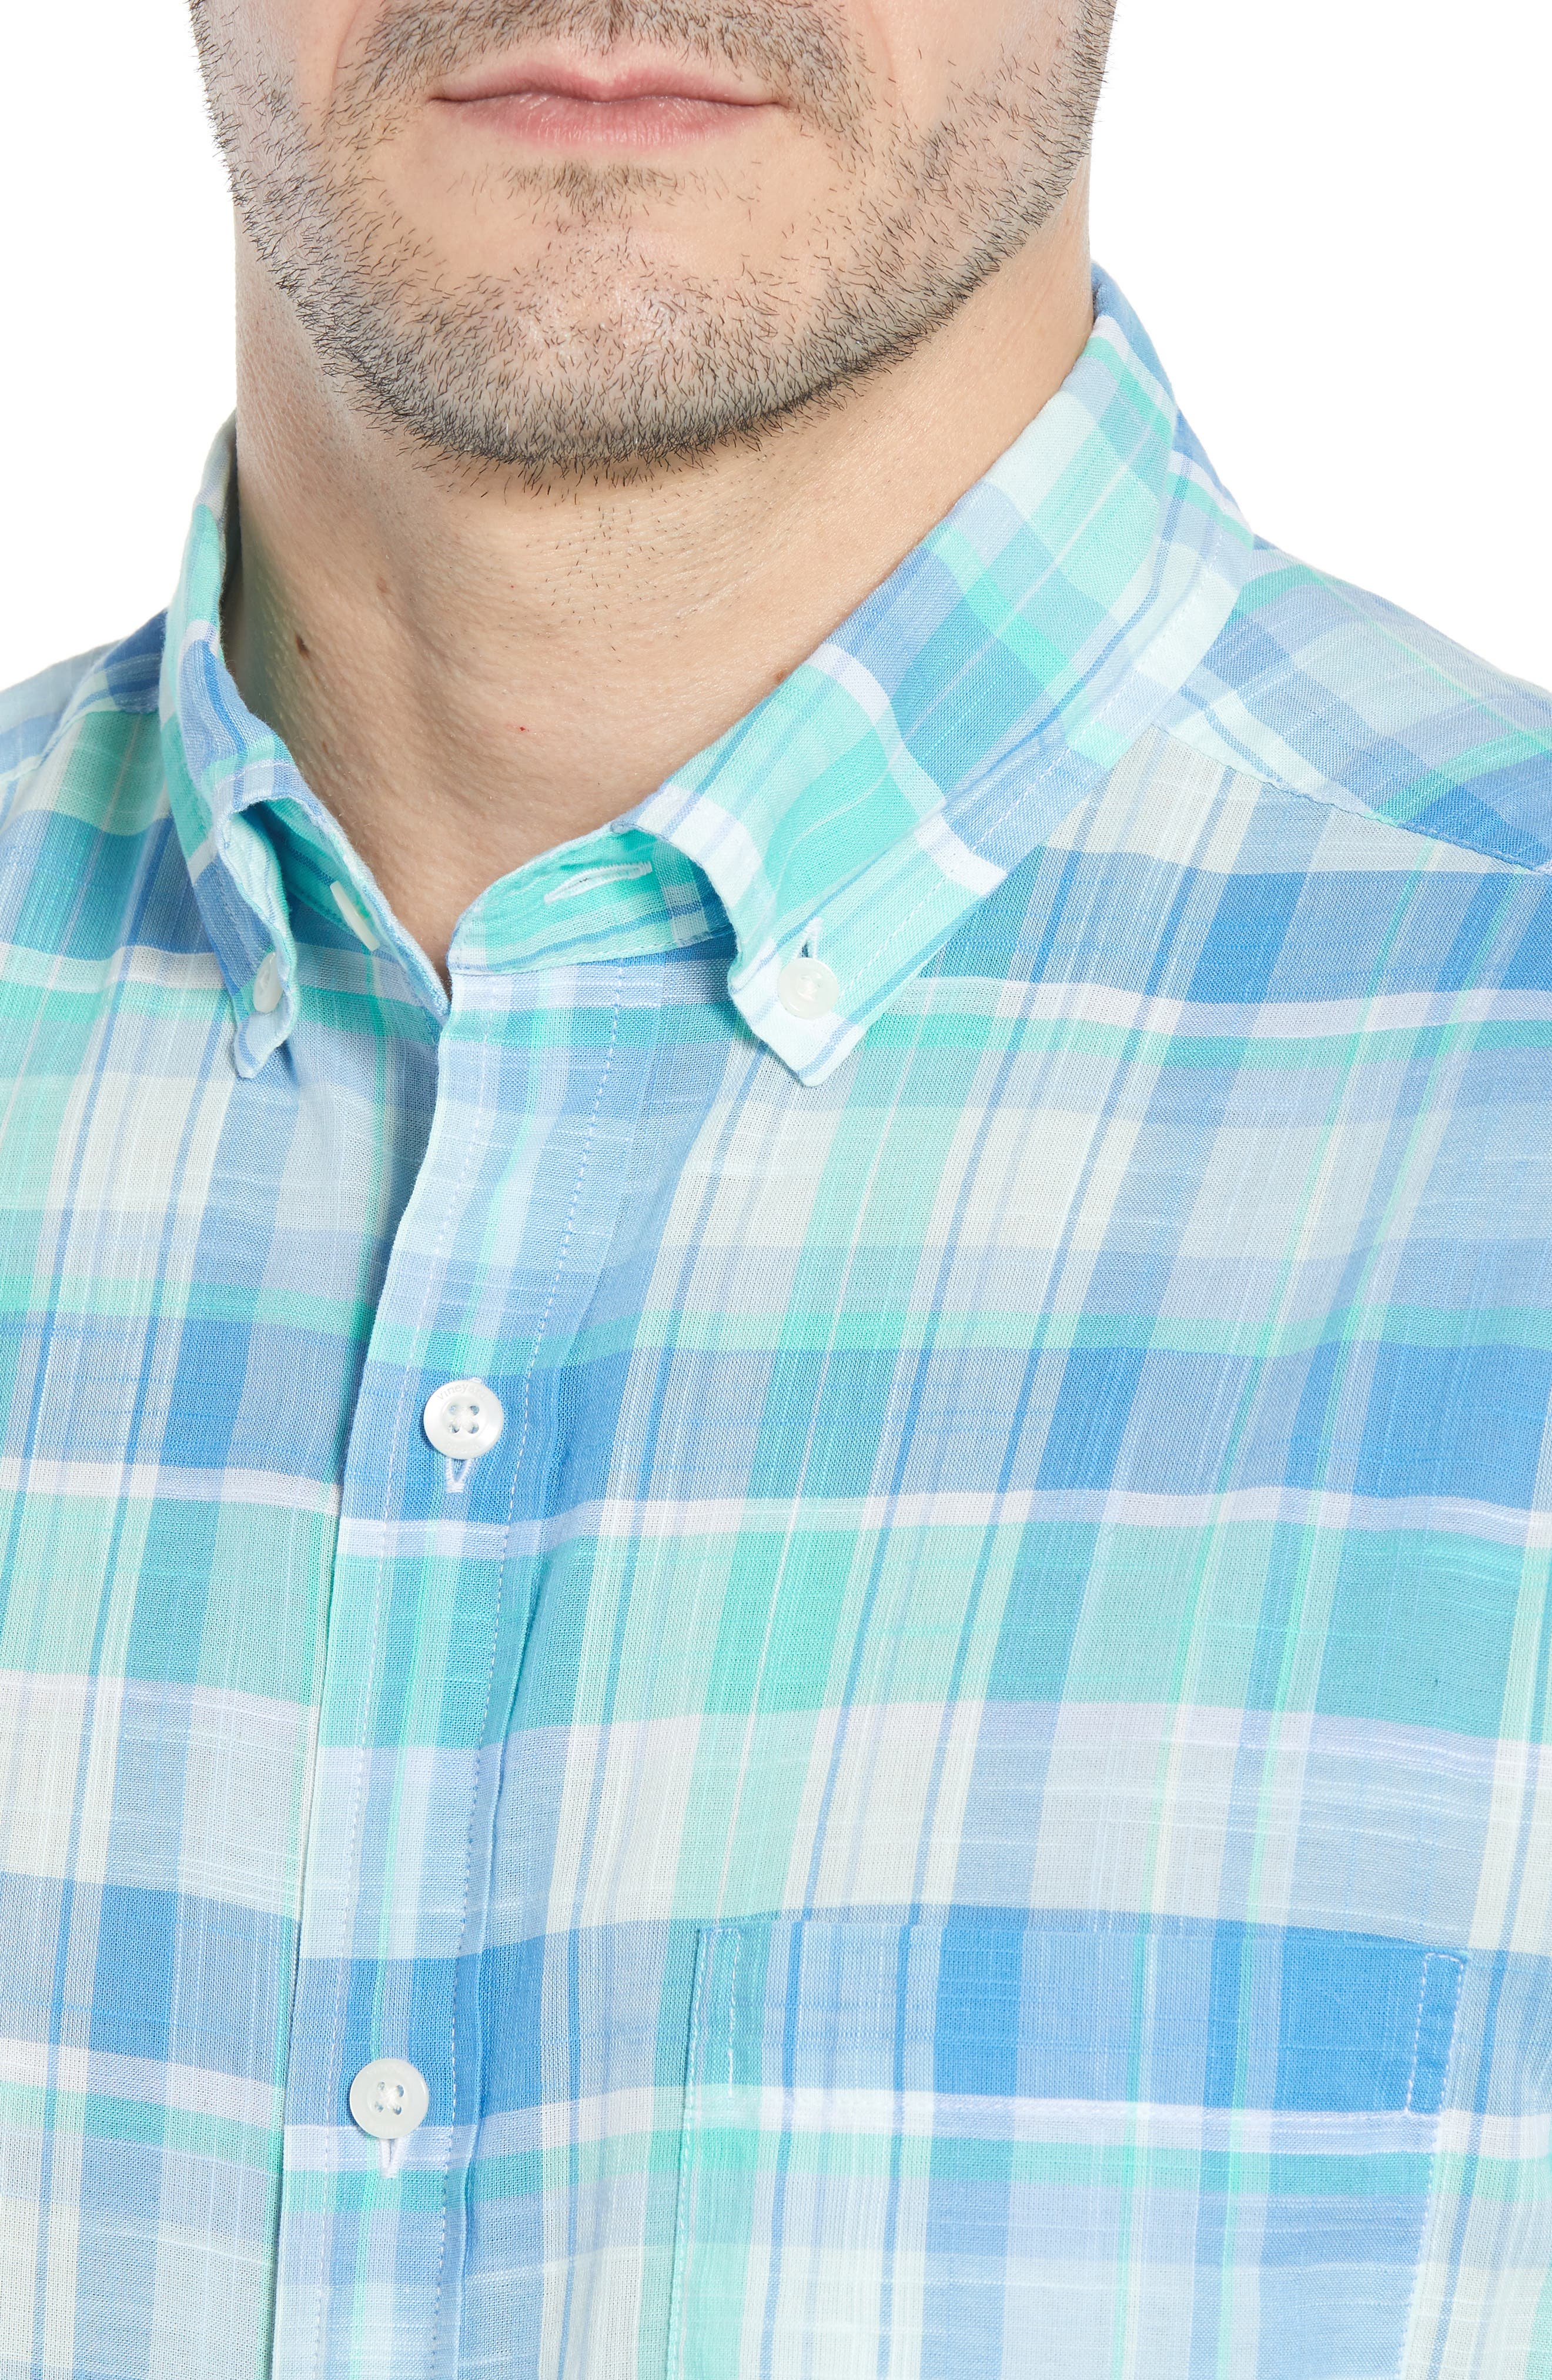 Homer Pond Murray Classic Fit Plaid Sport Shirt,                             Alternate thumbnail 4, color,                             359